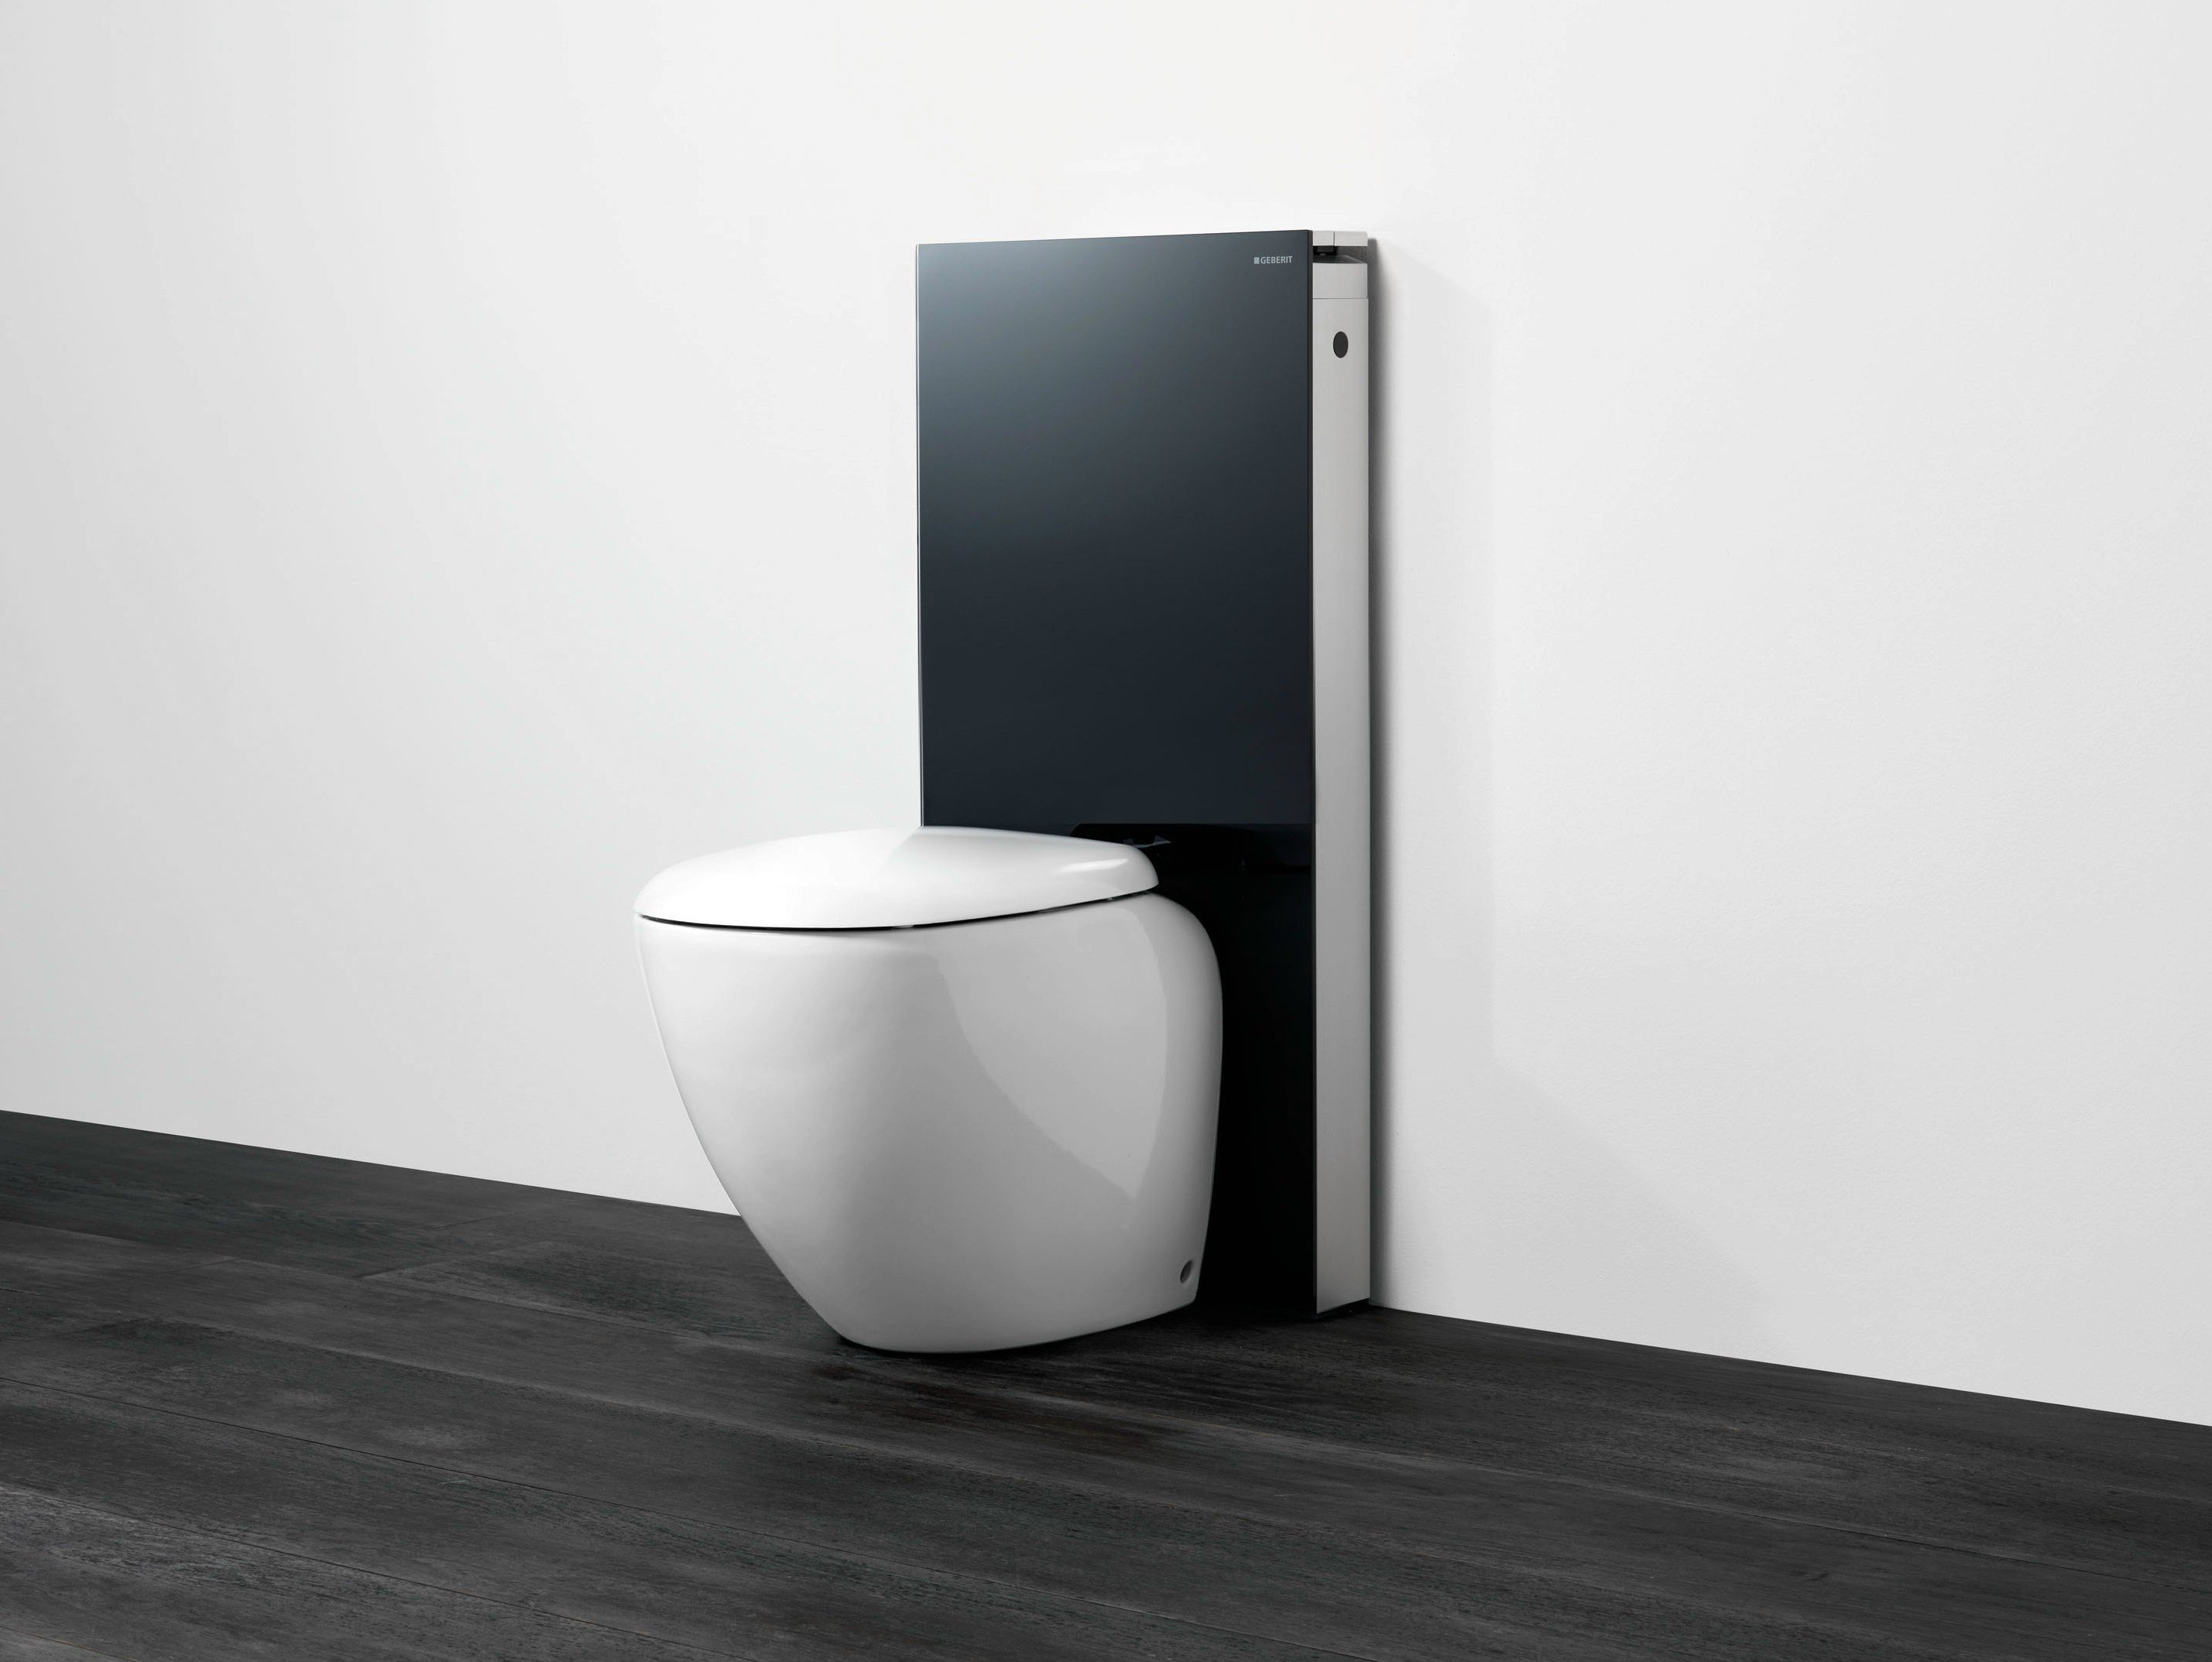 tempered glass sanitary module for toilets monolith by geberit italia design daniel ir nyi tom. Black Bedroom Furniture Sets. Home Design Ideas